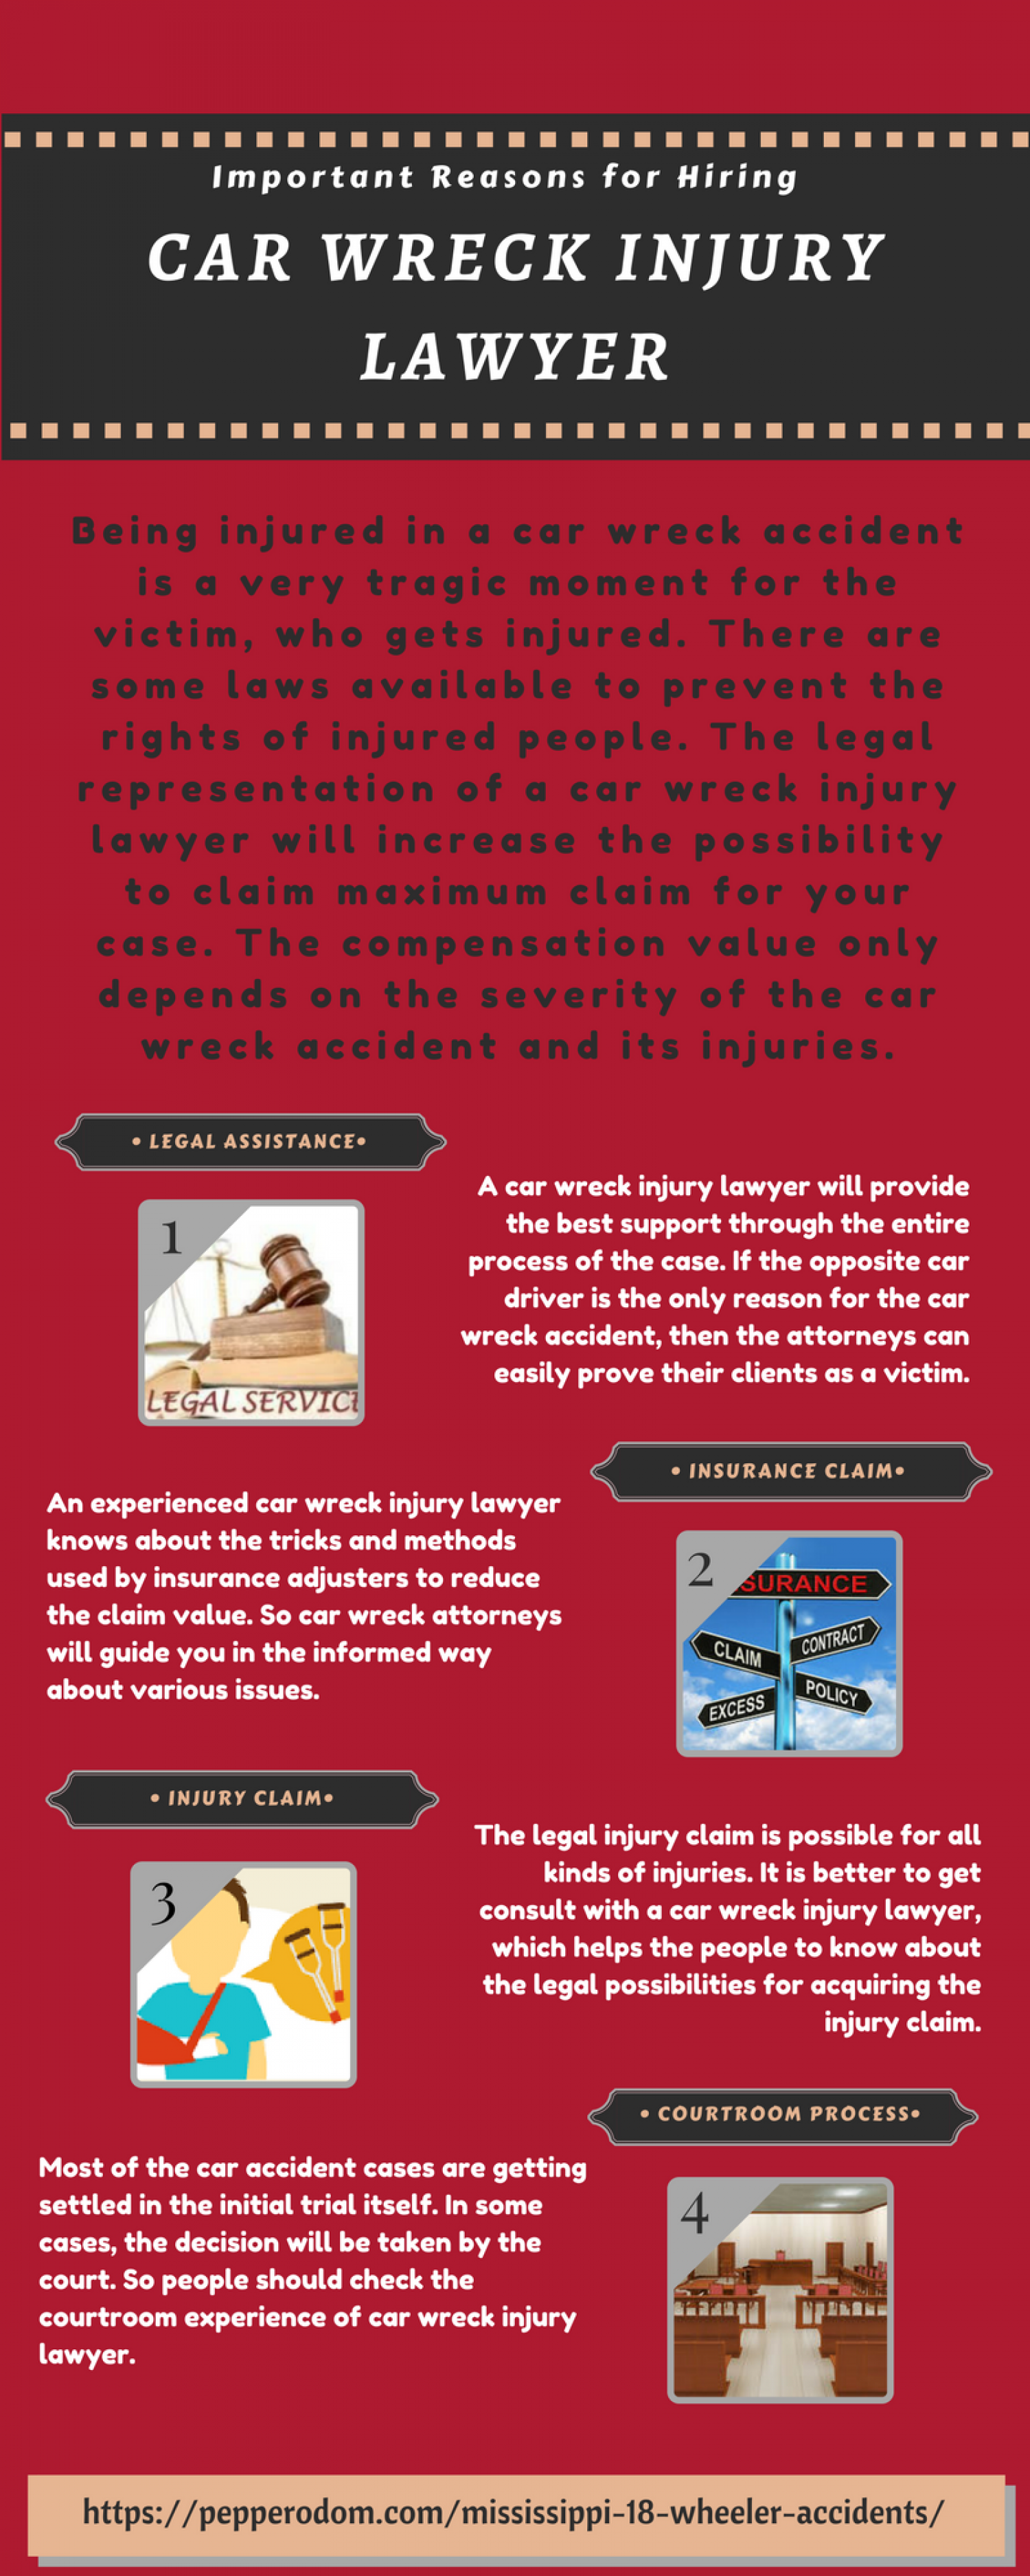 Important Reasons for Hiring a Car Wreck Injury Lawyer Infographic